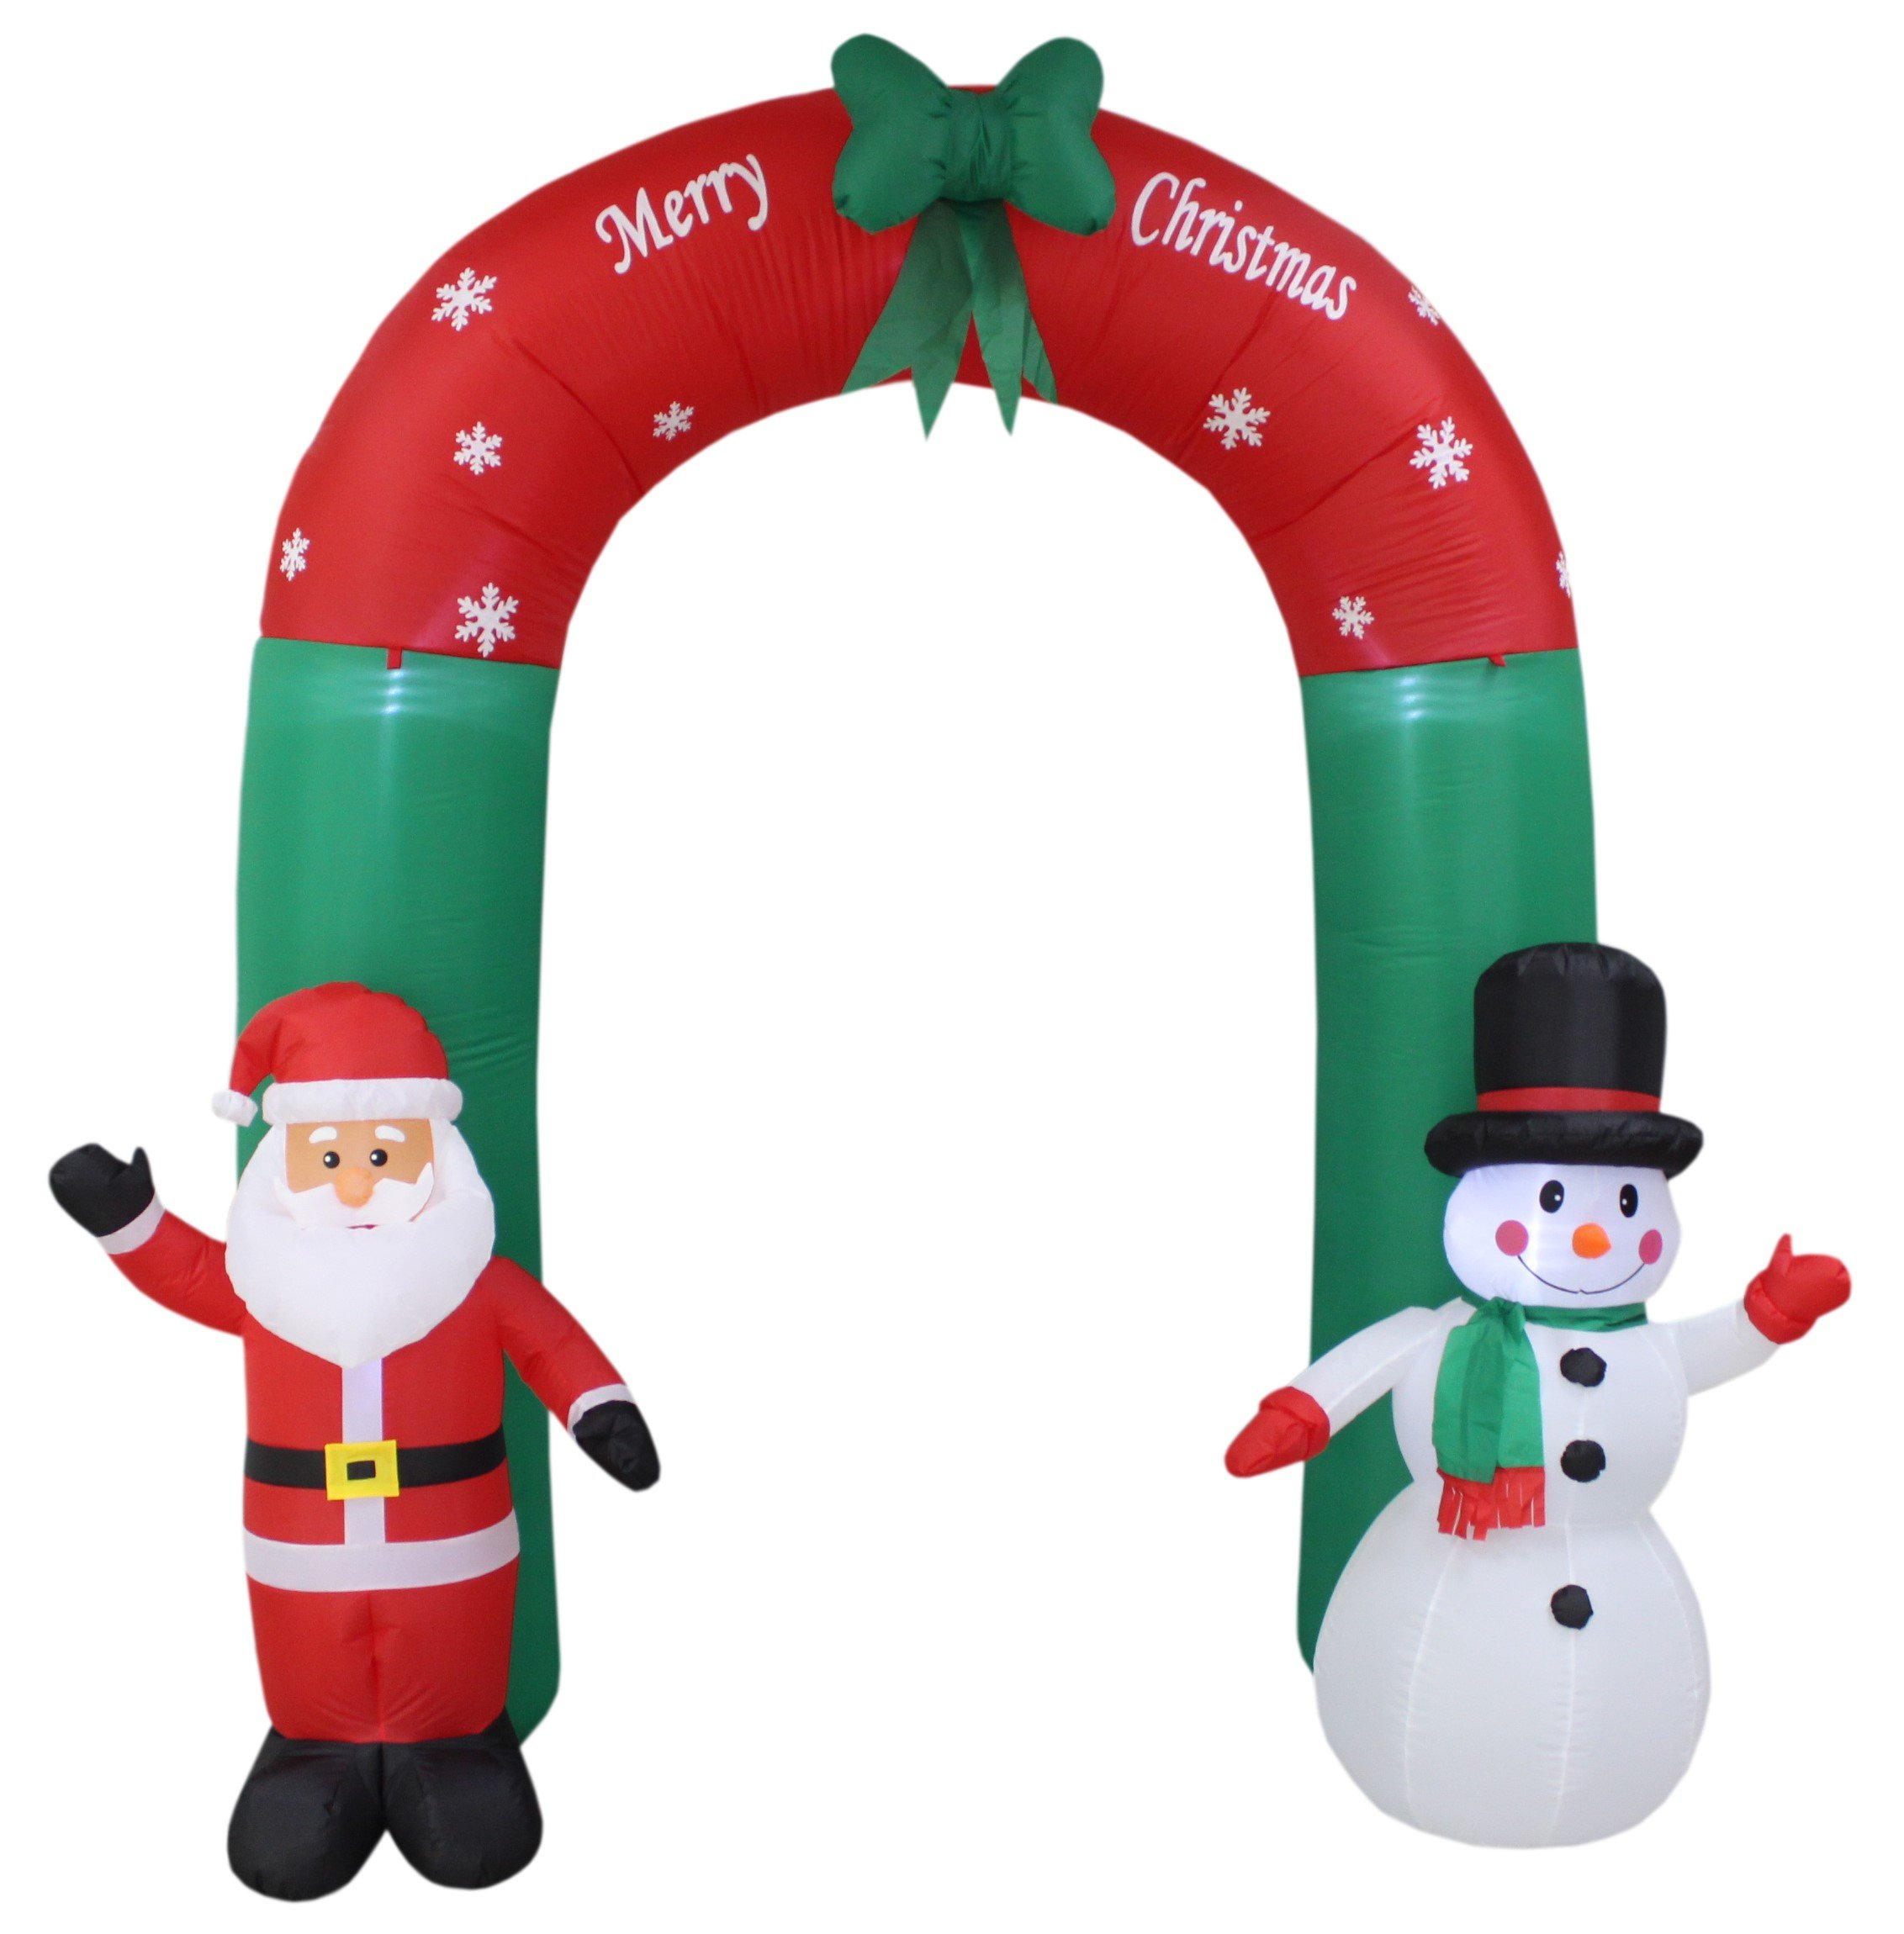 8 Foot Tall Lighted Christmas Inflatable Santa and Snowman Archway with Bow LED Yard Art Decoration